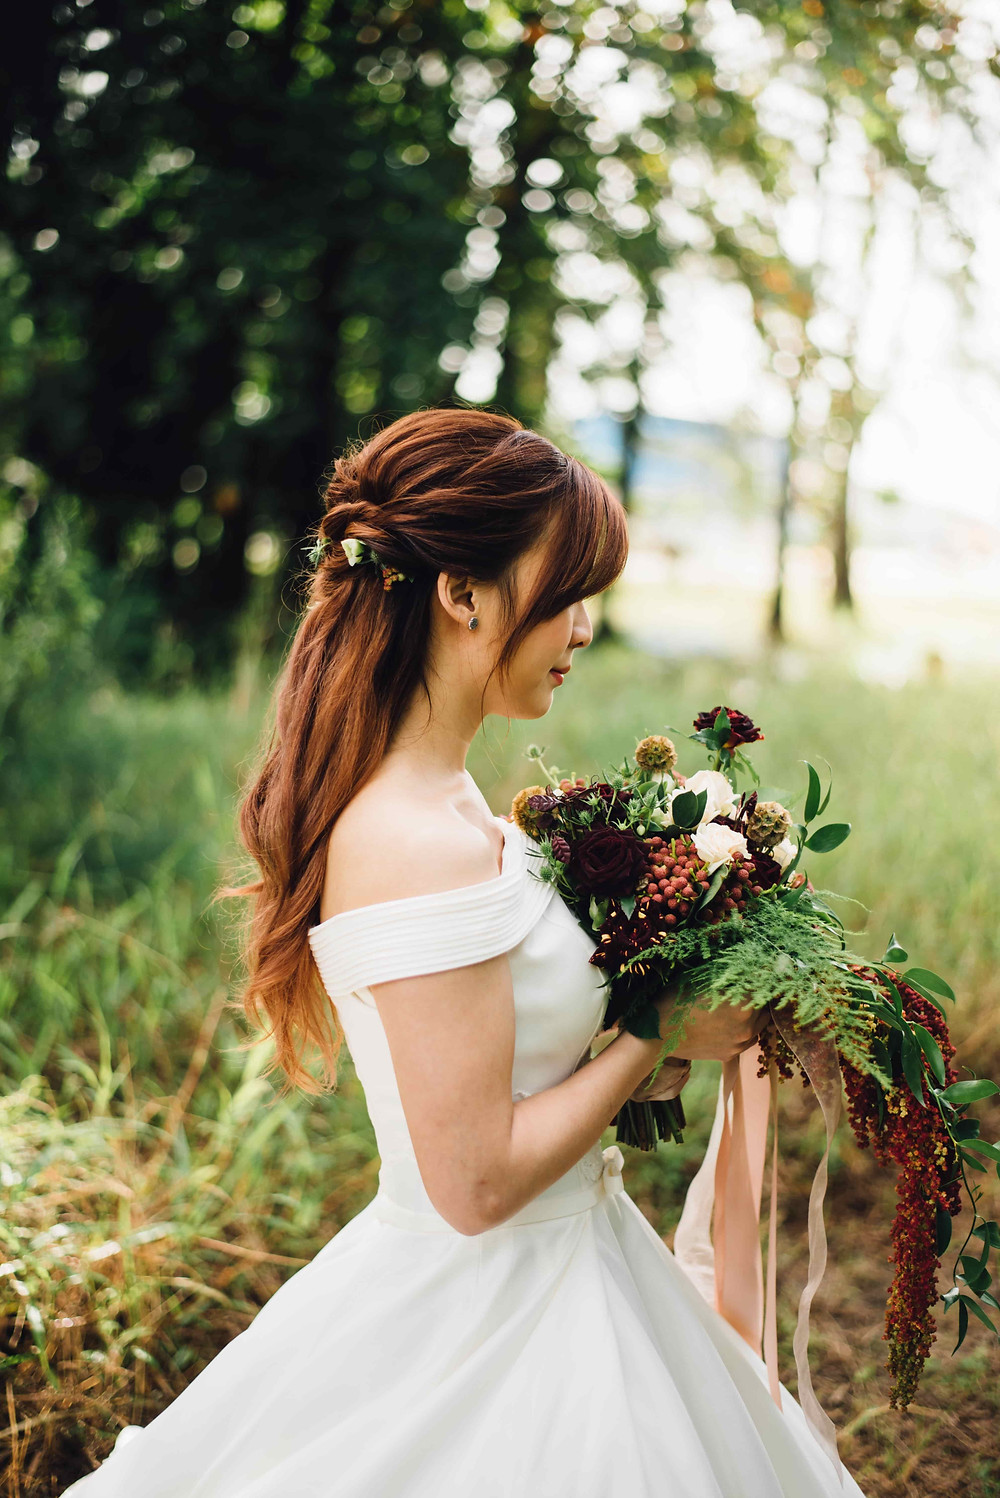 Bride with Long Hair Holding Bouquet in a Backfacing Wedding Shoot Pose